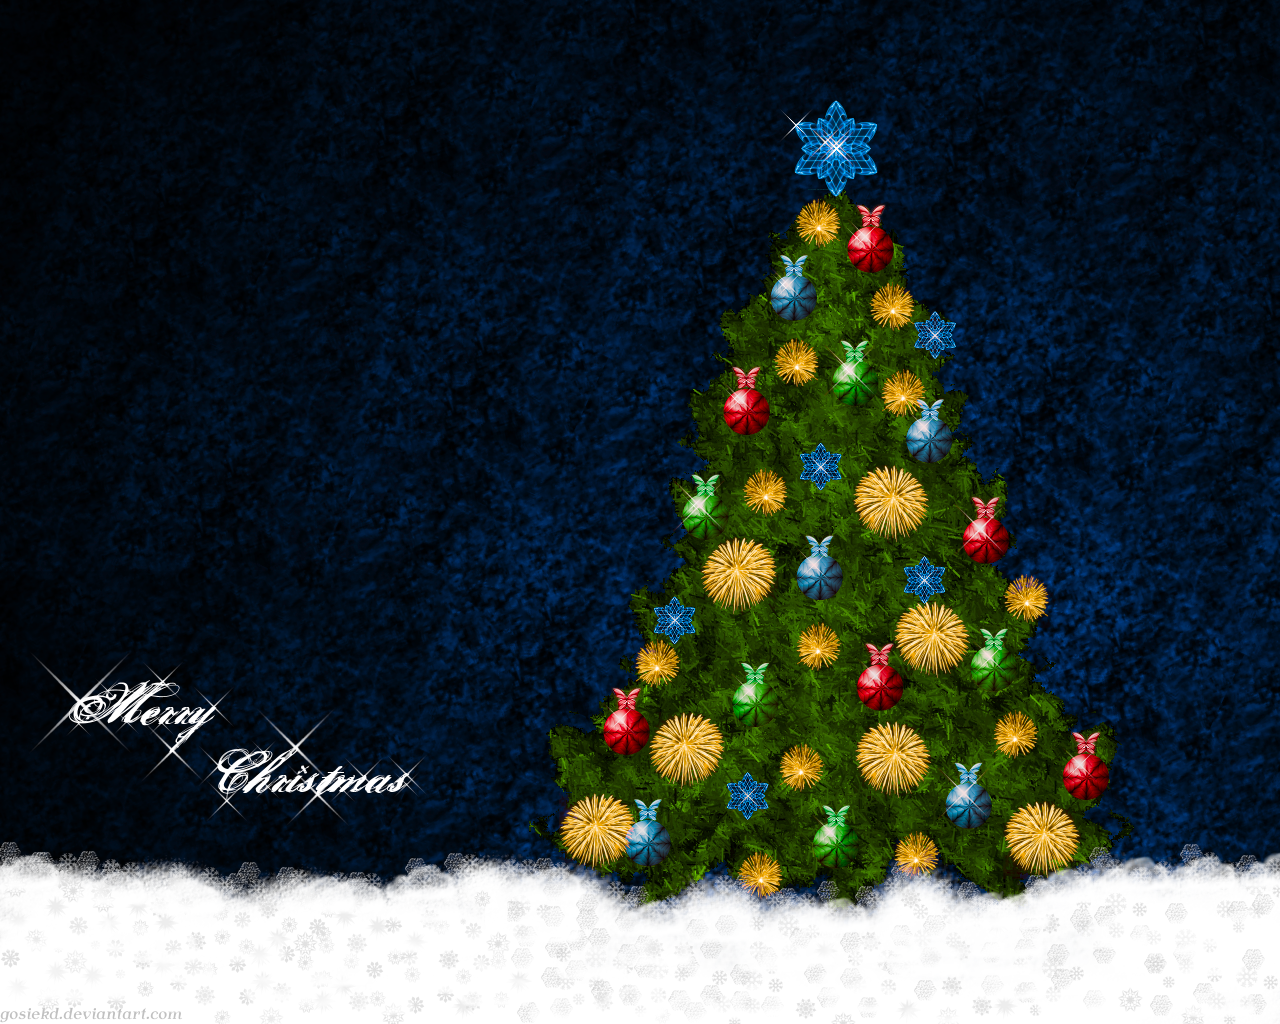 christmas tree wallpaper by gosiekd d16u2pe Cool And Beautiful Christmas Photos